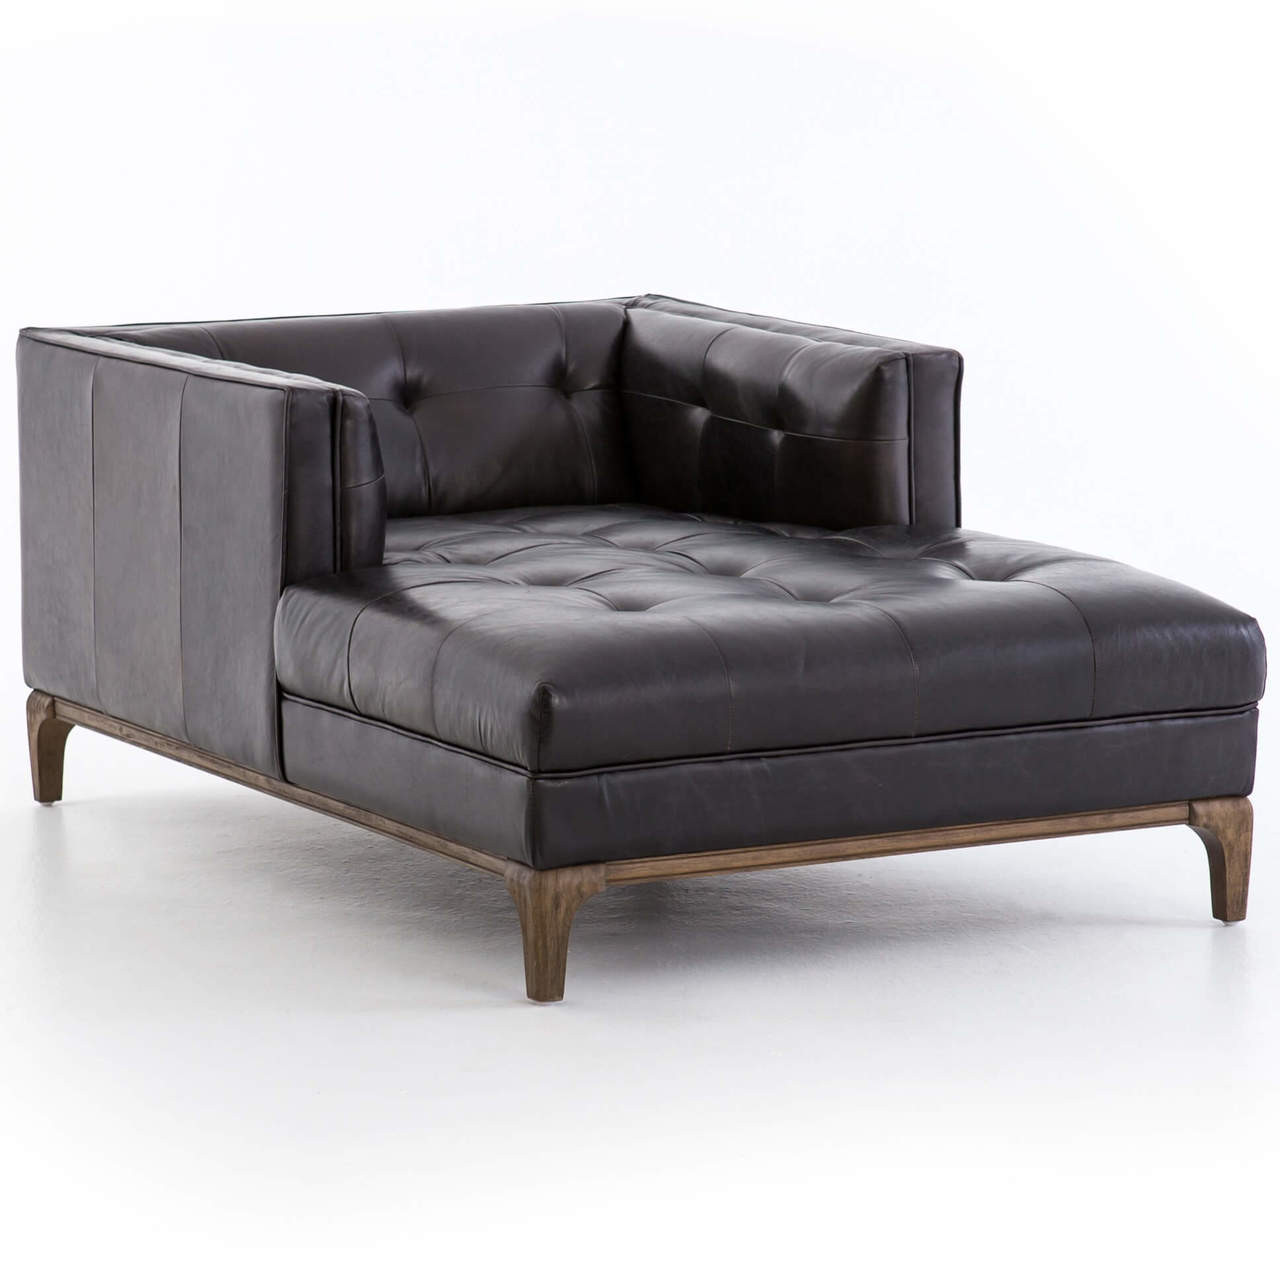 Dylan Mid-Century Modern Black Leather Chaise Lounge | Zin Home